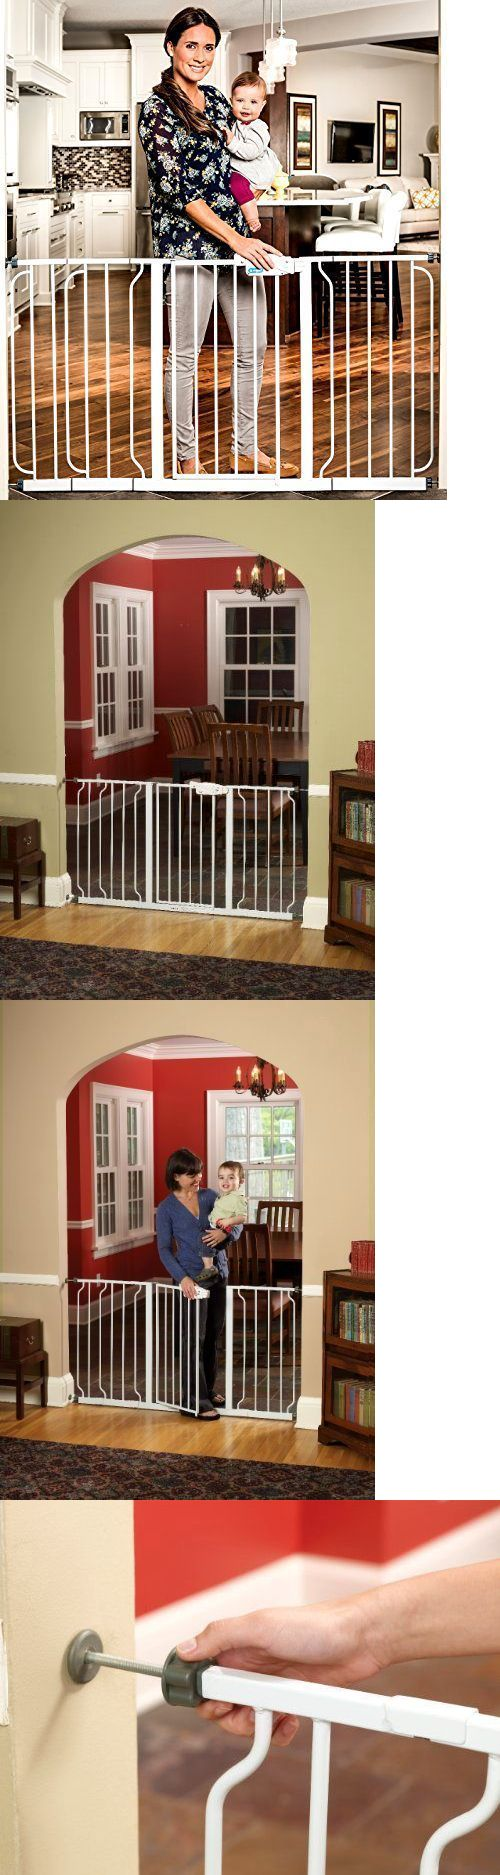 Safety Gates 117029: Extra Wide 58 Inch Walk Through Safety Locking Child Proof Dog Pet Gate White -> BUY IT NOW ONLY: $59.23 on eBay!